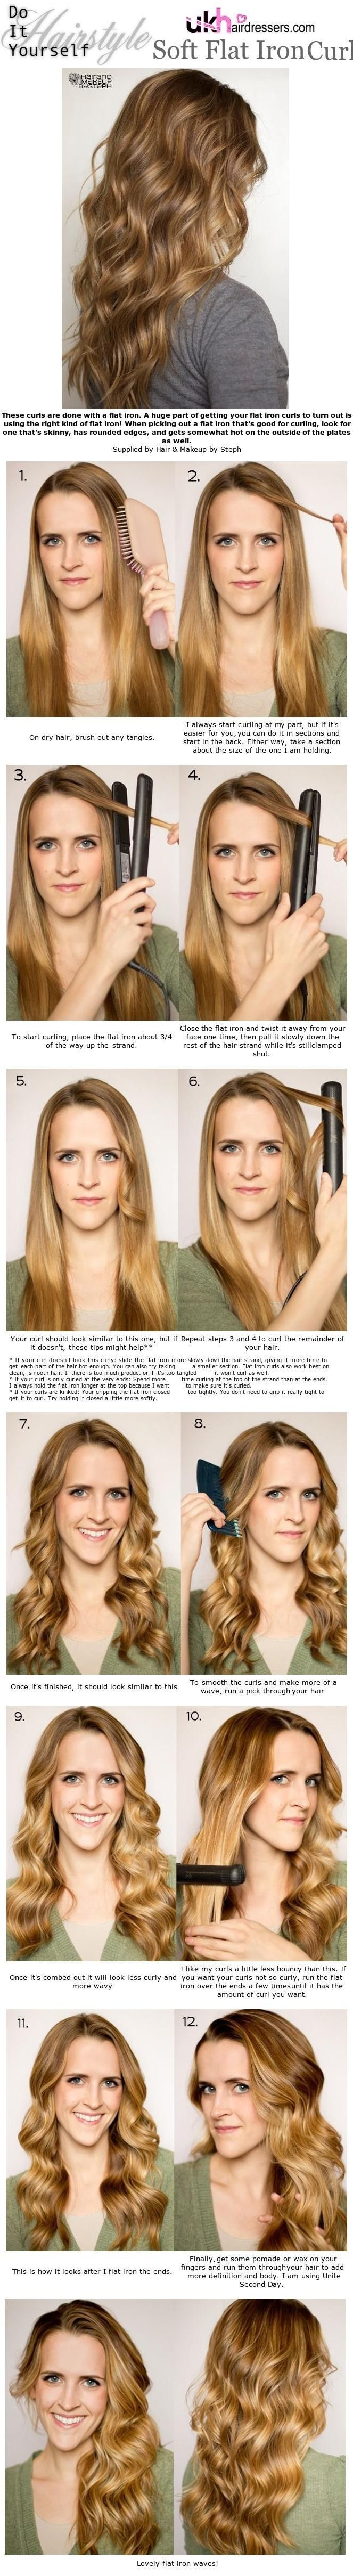 how to keep curls in hair that wont curl